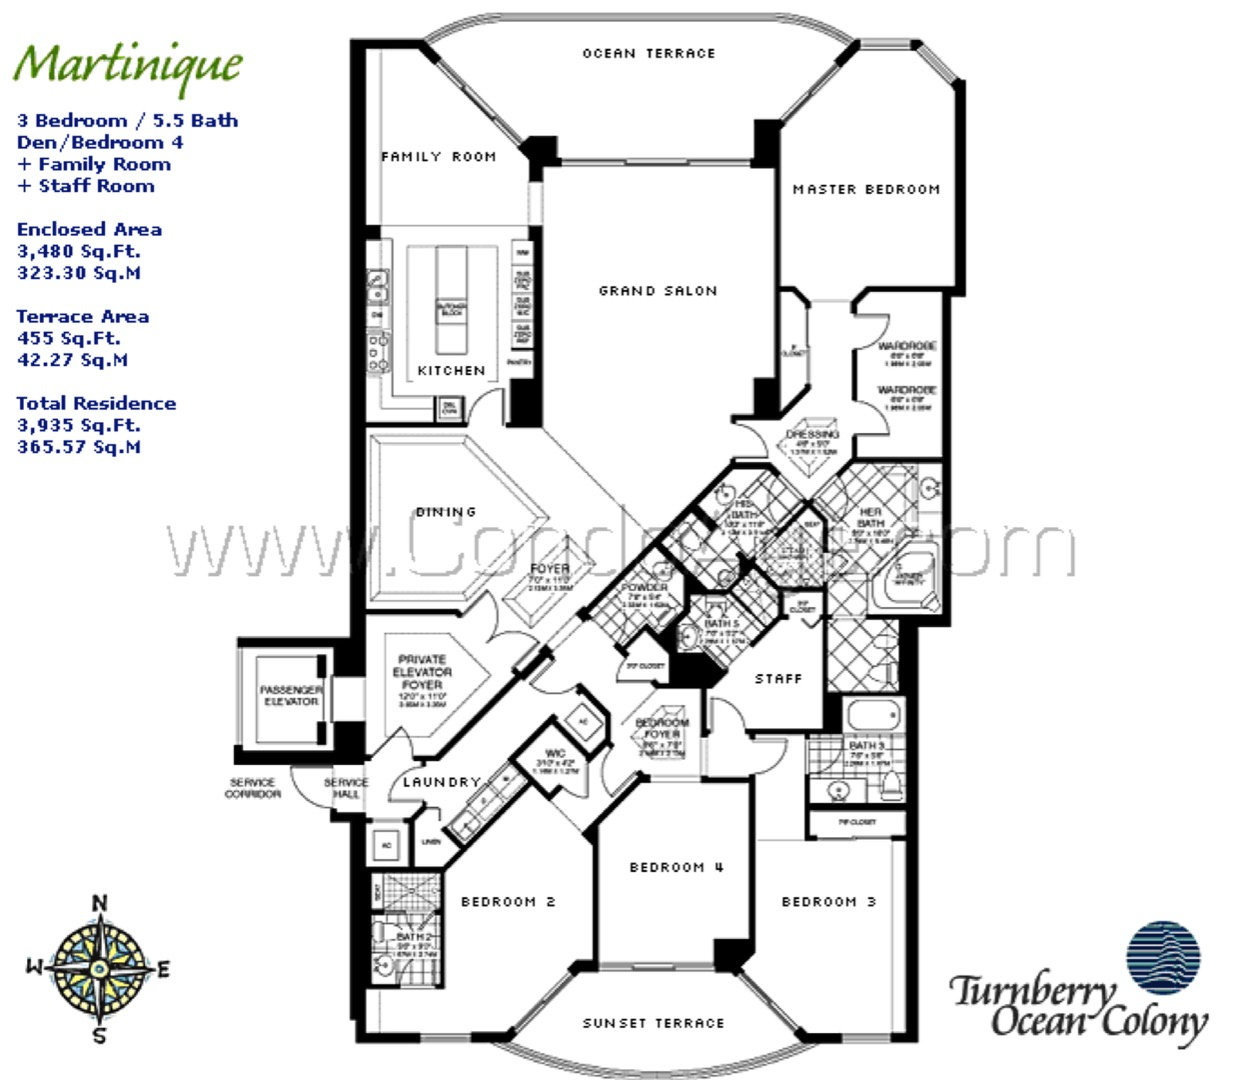 Martinique floor plan image